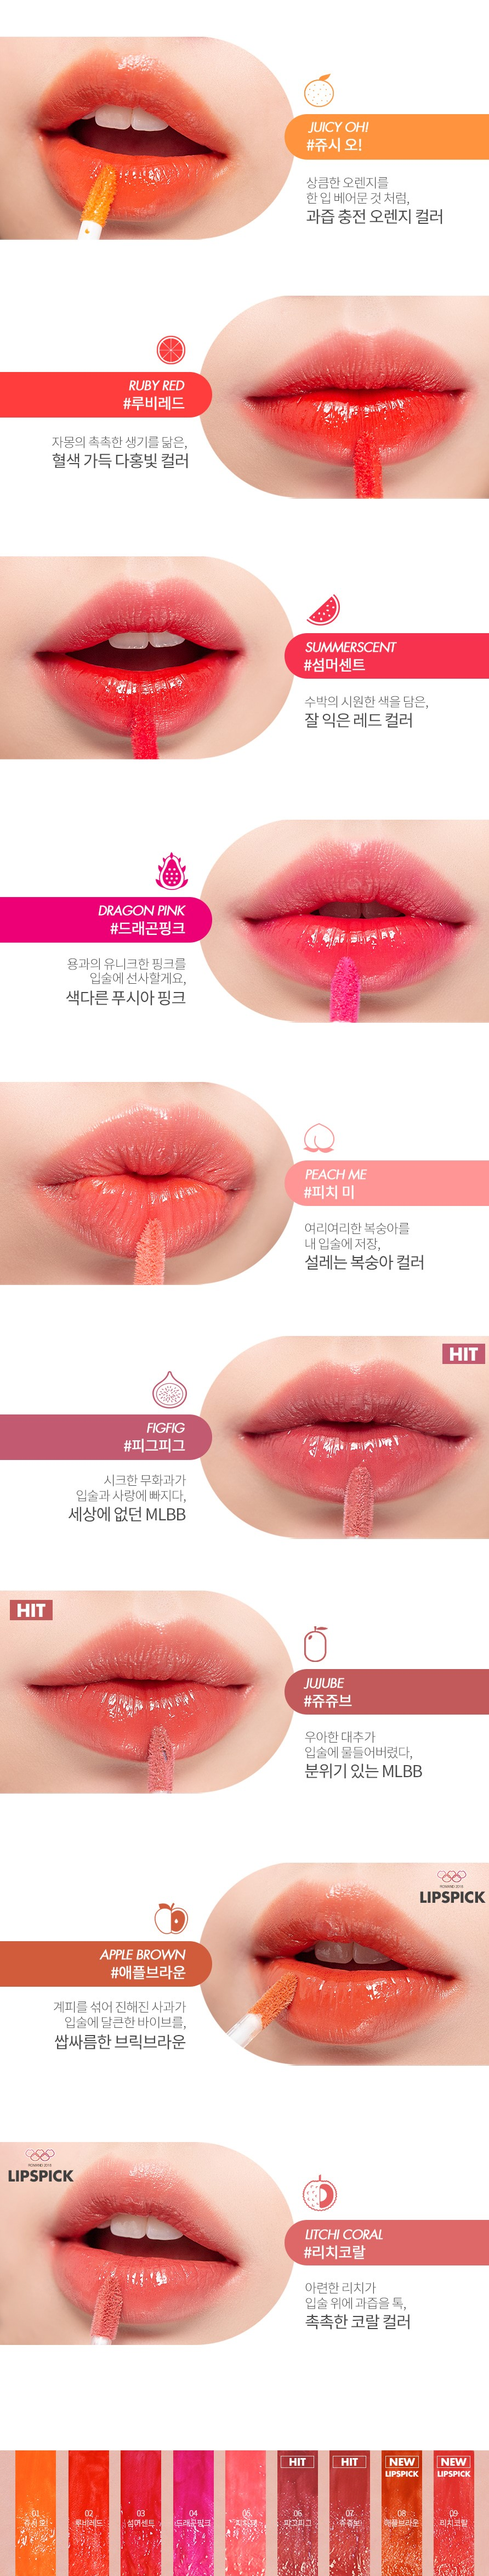 JuzBeauty_JuzBeautyMalaysia_Authentic_Kbeauty_Romand_Juicy_Lasting_Tint_2.jpg